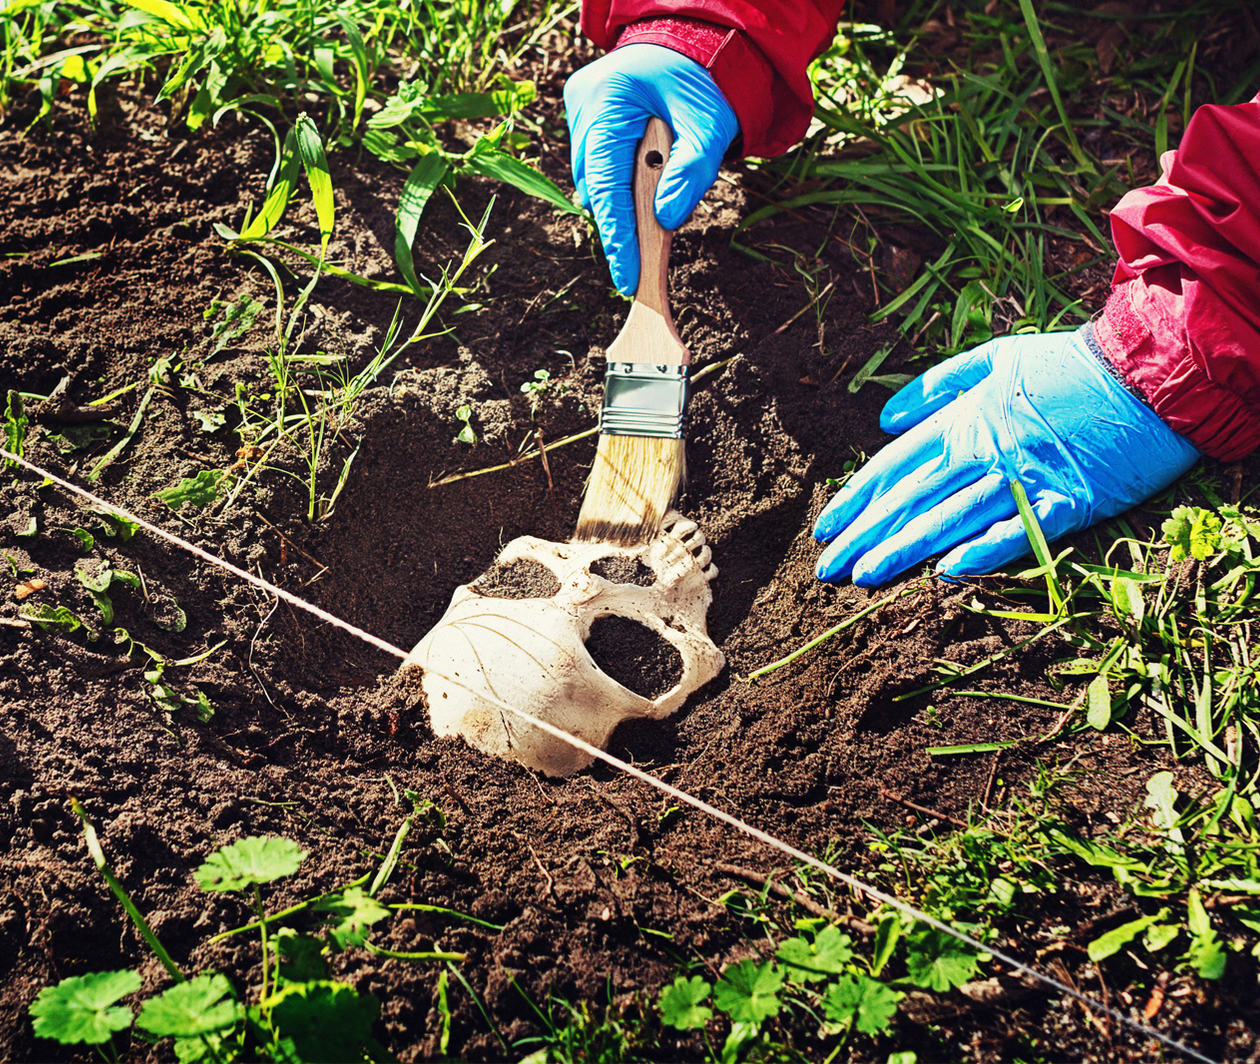 Forensic Archaeology and Anthropology